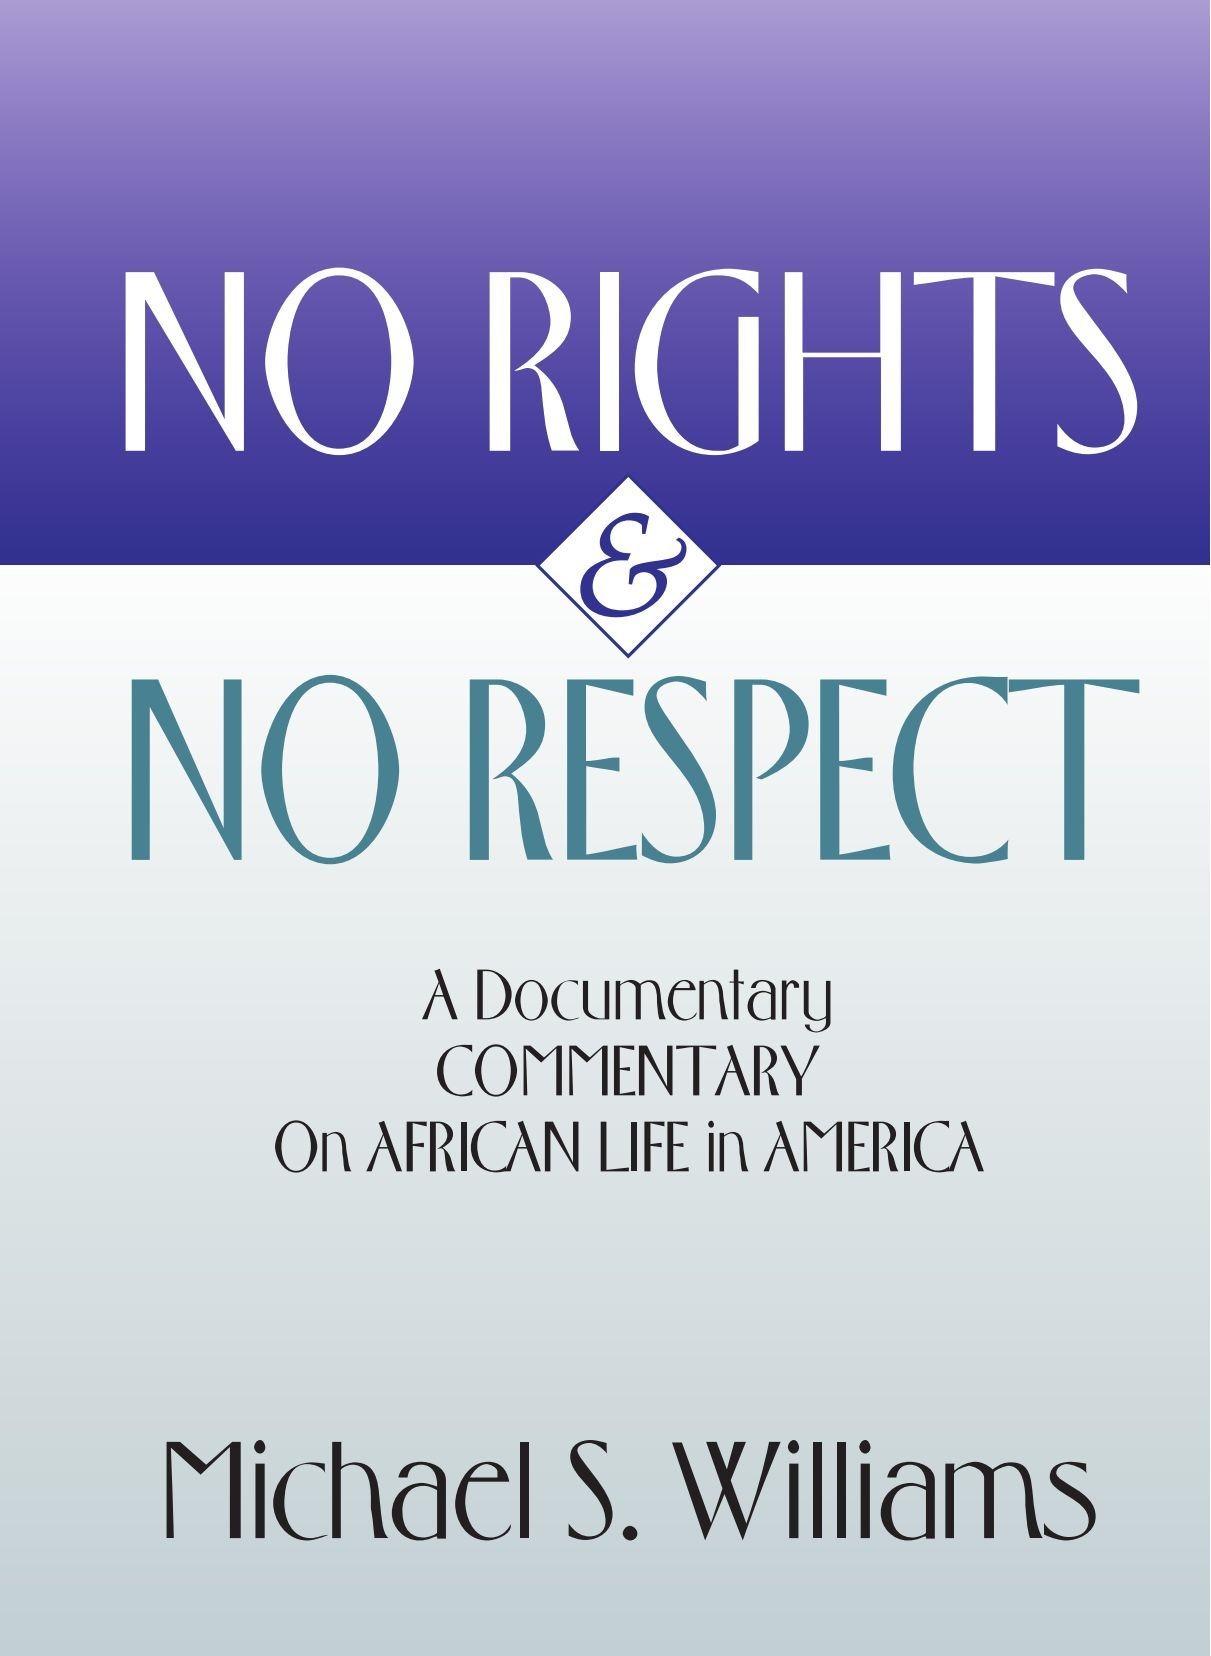 No Rights and No Respect: A Documentary Commentary on African Life in America PDF